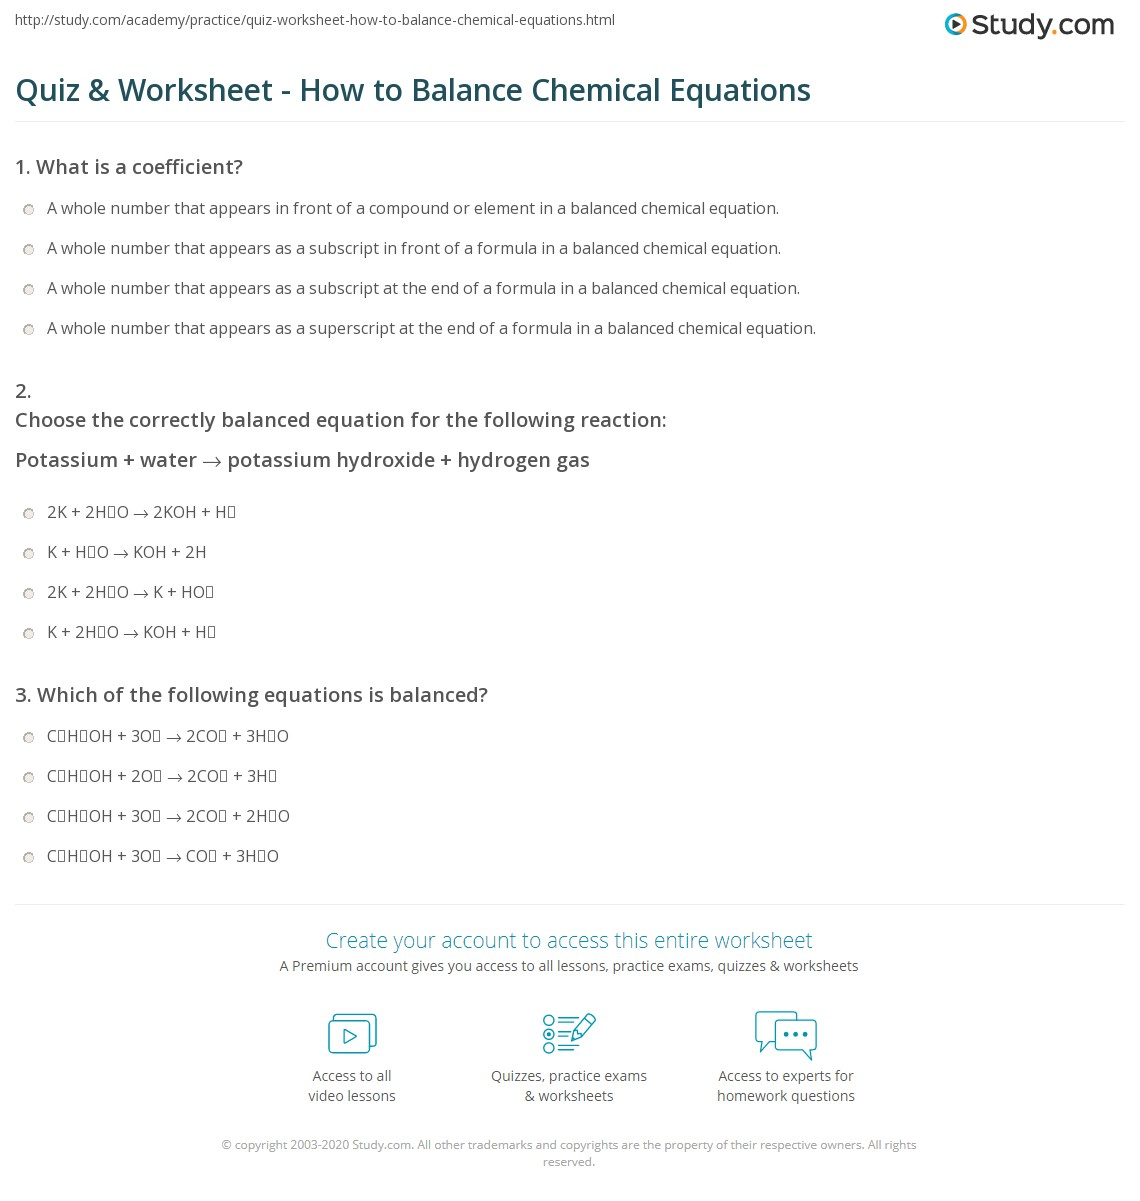 Quiz Worksheet How to Balance Chemical Equations – Balancing Chemical Reactions Worksheet 2